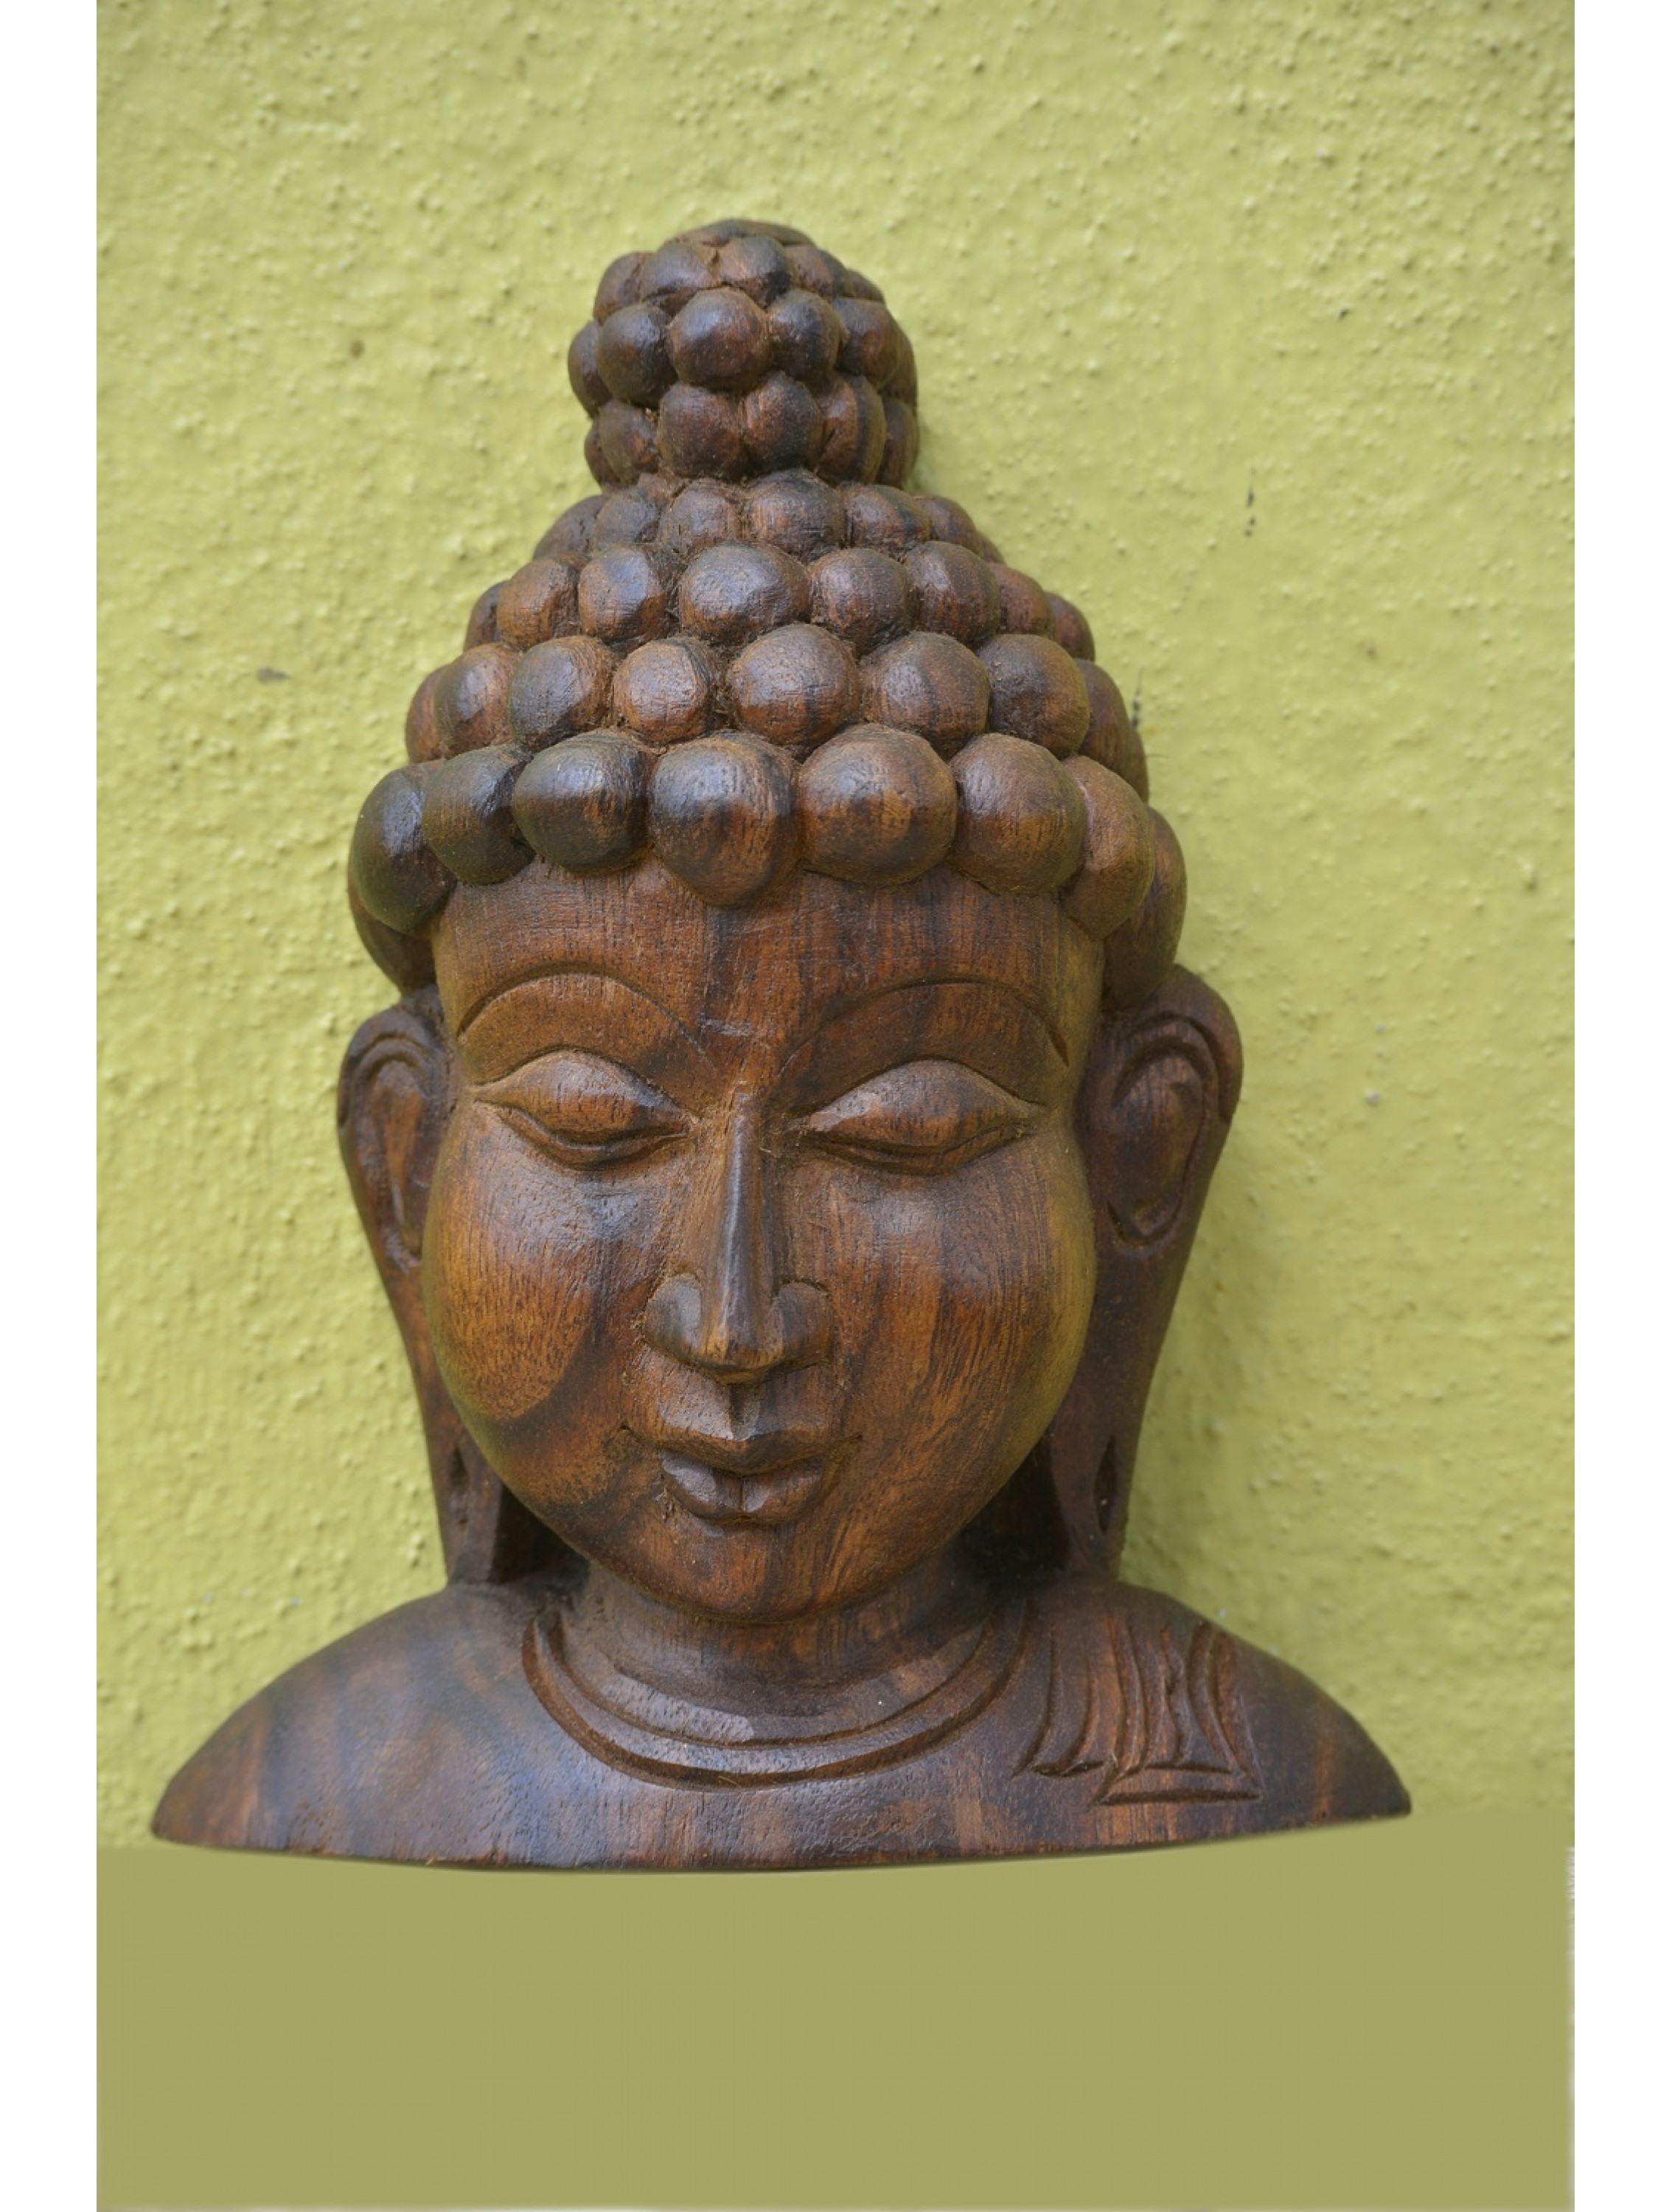 Small and Cute Wooden Buddha Bust